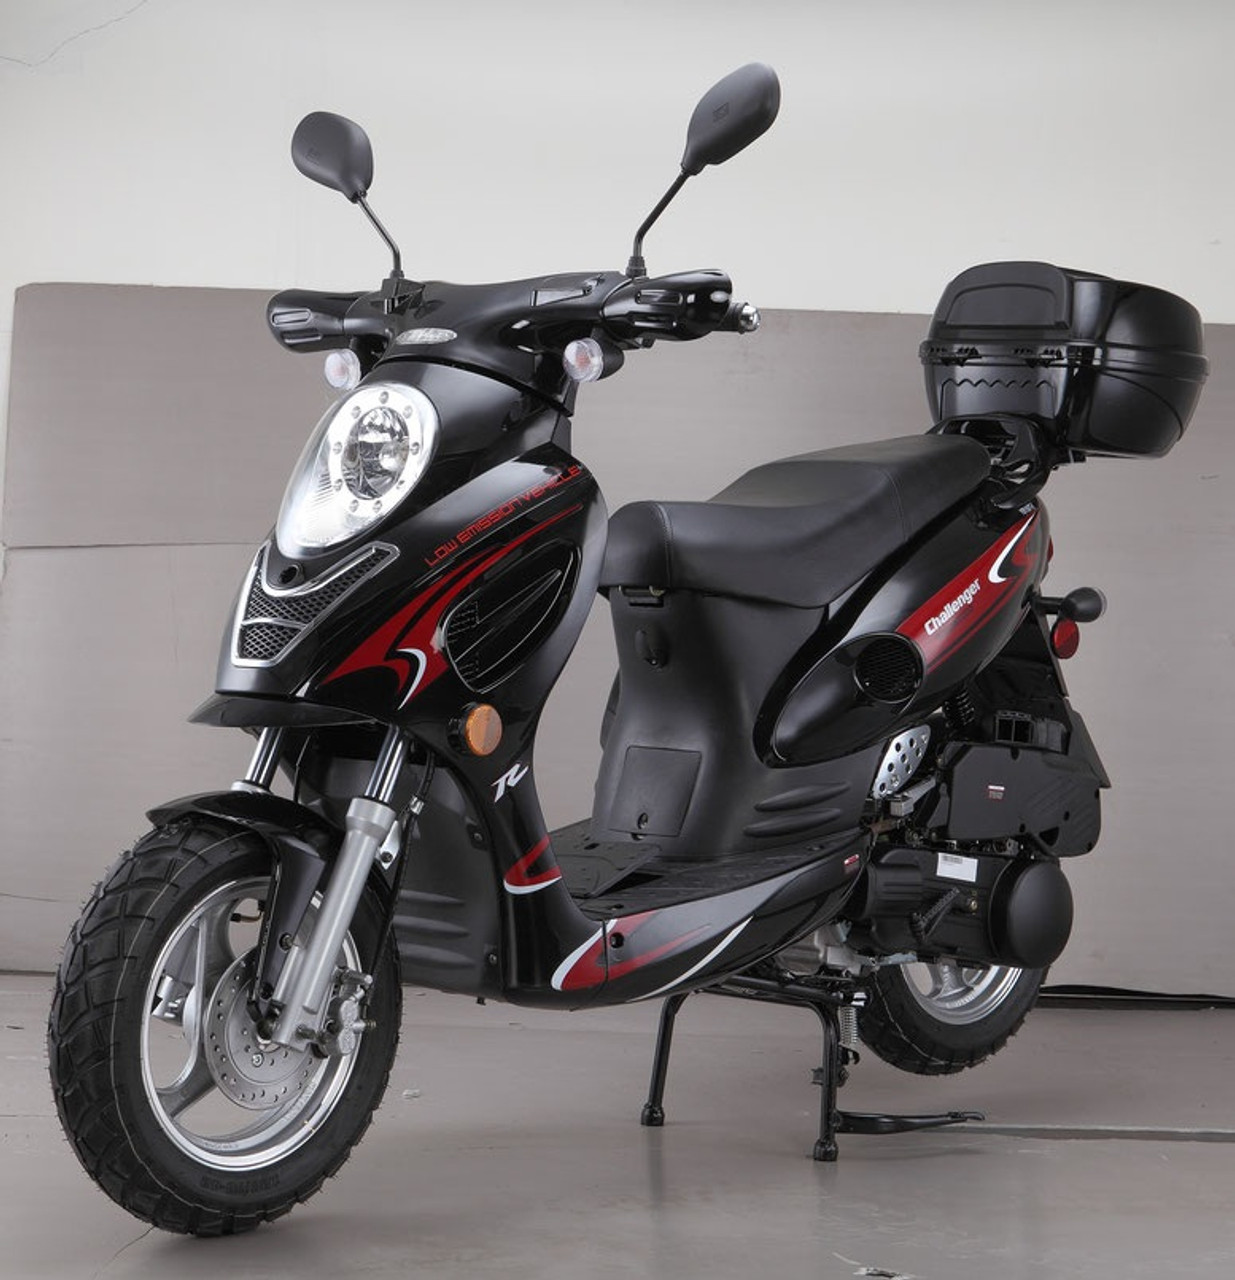 Cougar Cycle CHALLENGER 50cc Scooter, 4 Stroke, Air-Forced Cool,Single Cylinder